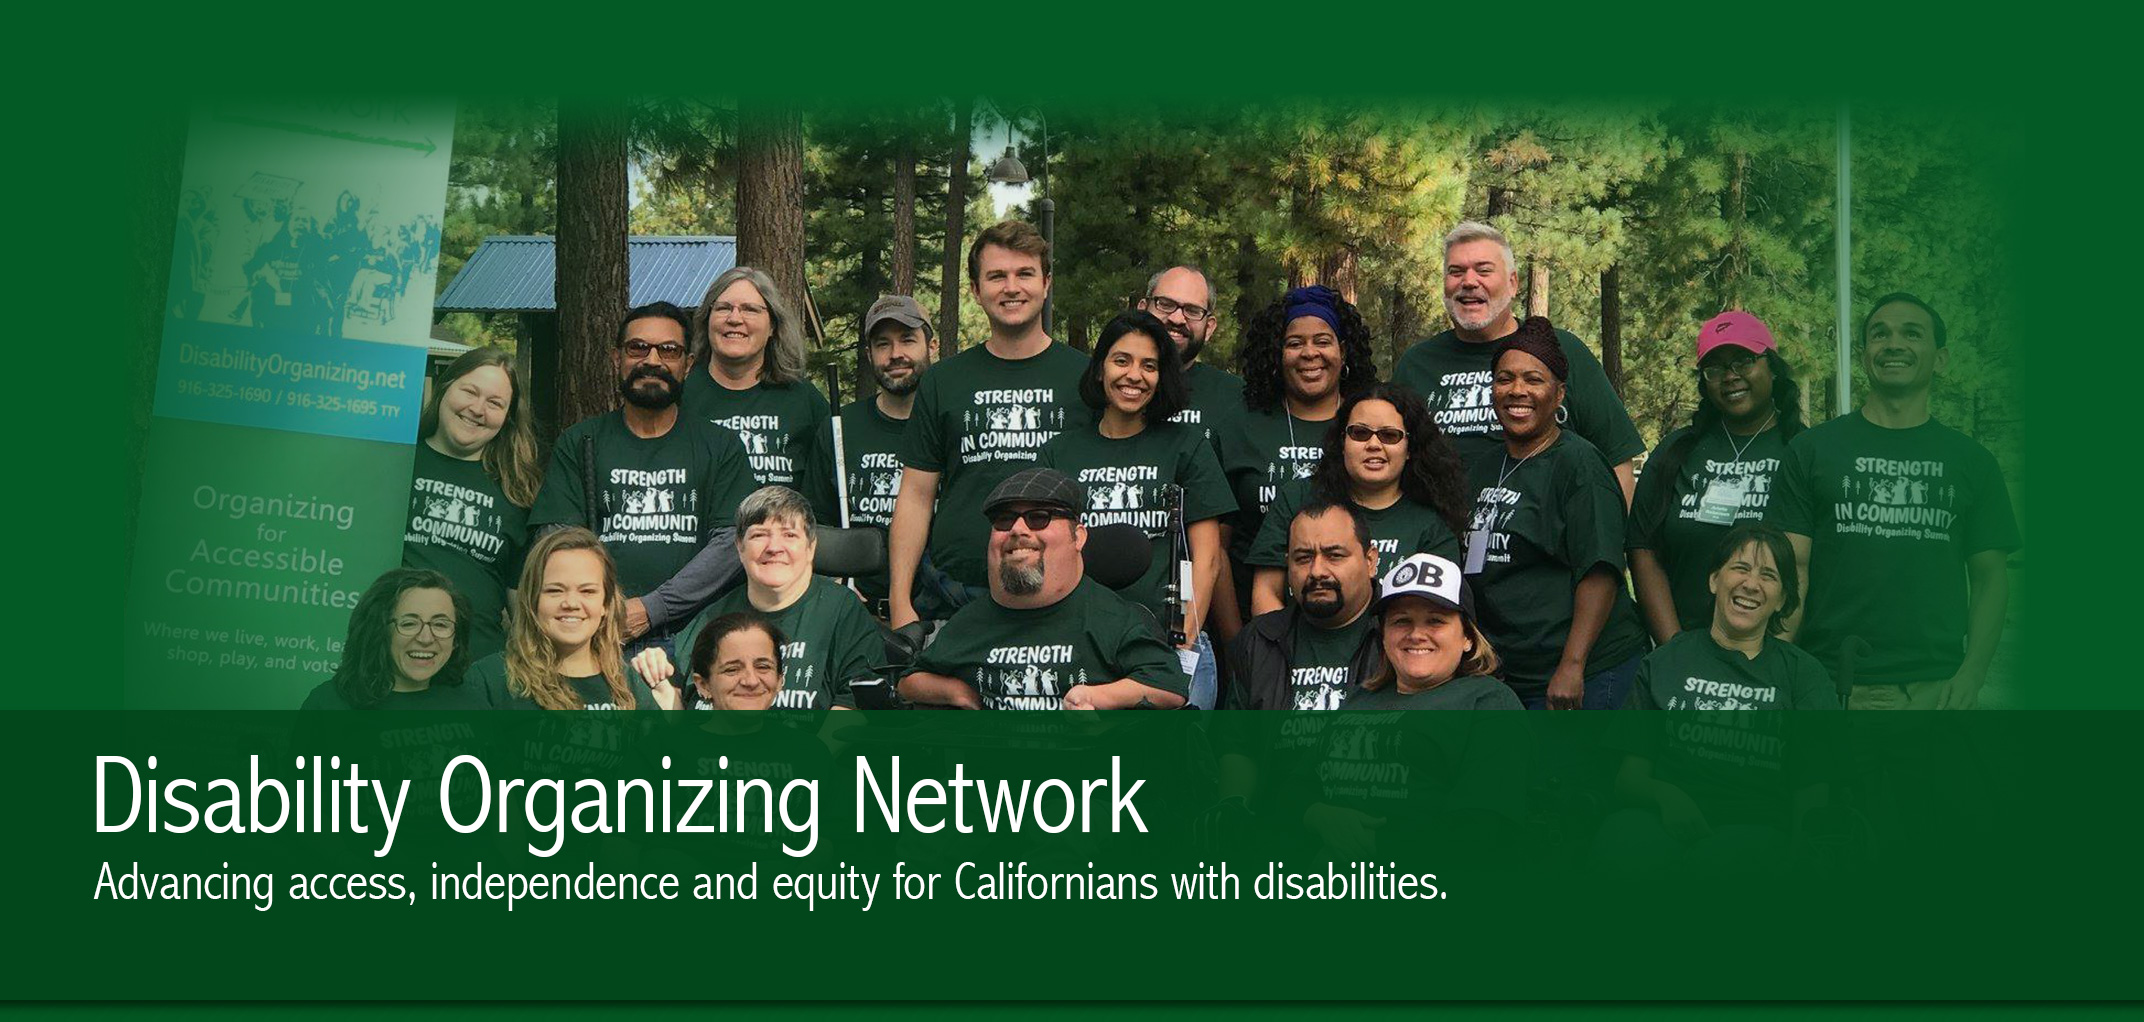 Disability Organizing Network. Advancing access, independence and equity for Californians with disabilities. A large group photo of smiling community organizers.